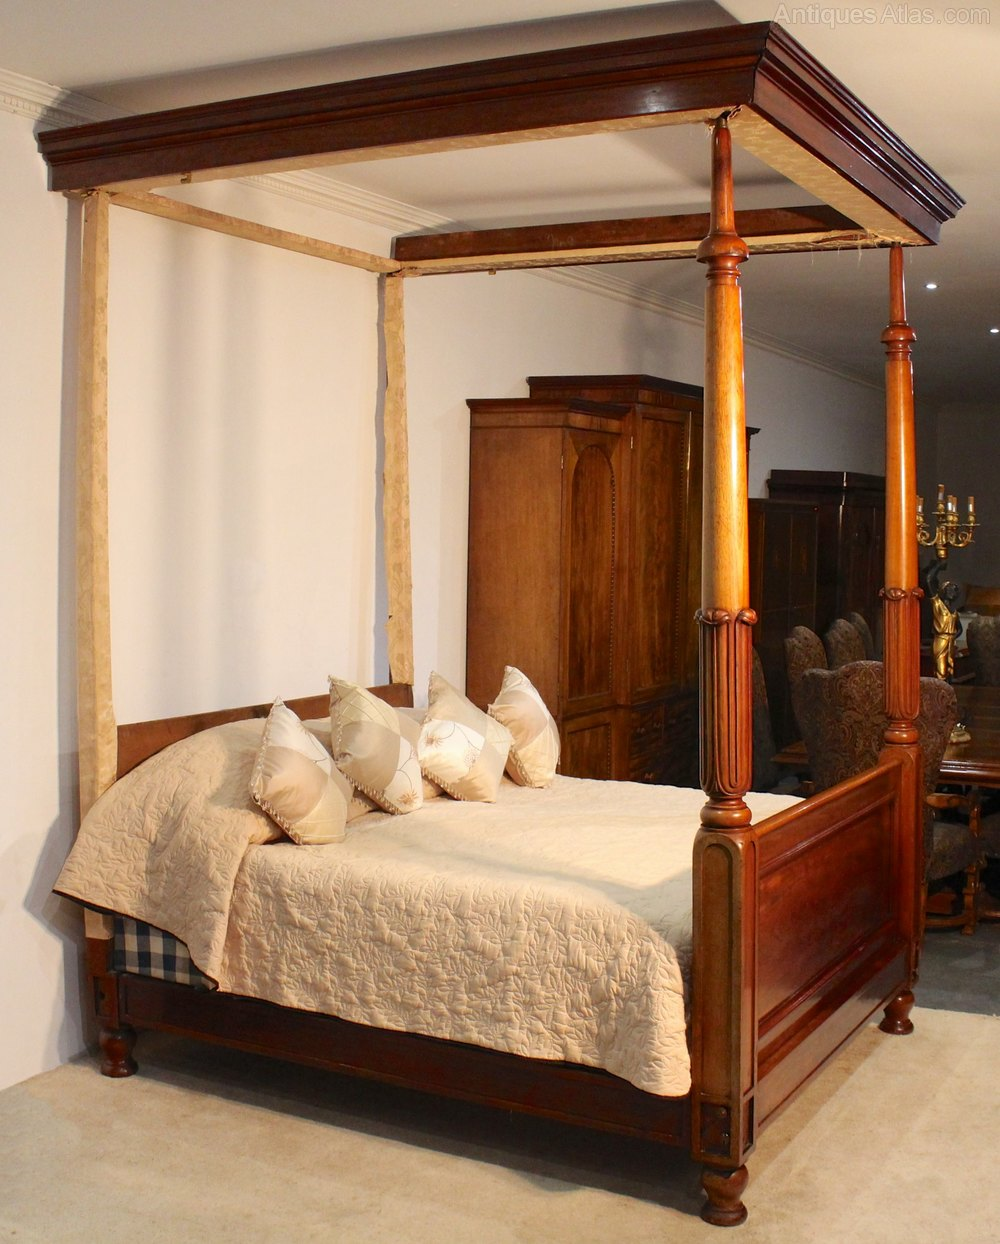 6ft Wide William IV Mahogany Four Poster Bed